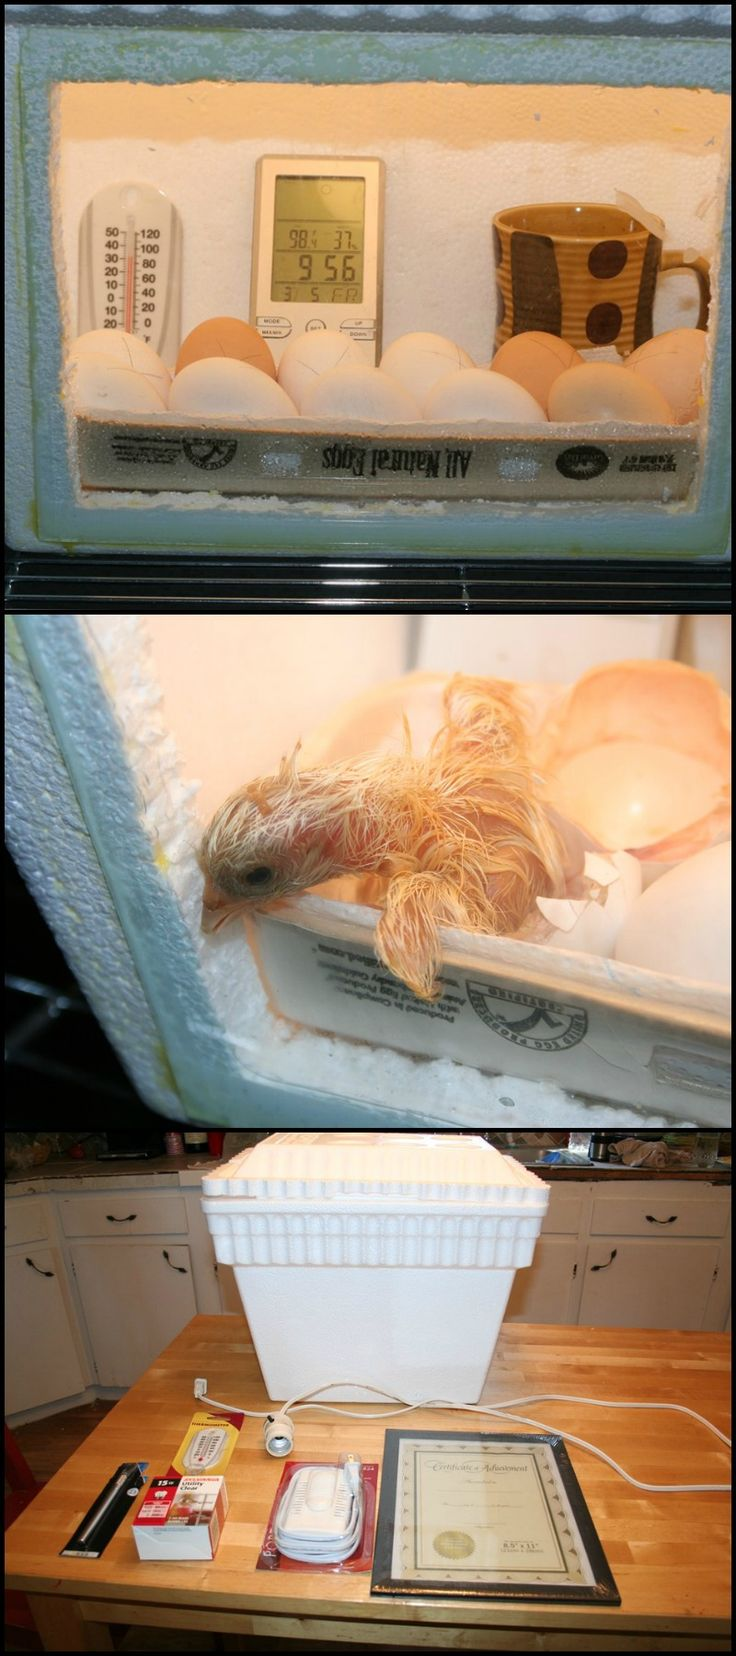 Want to hatch your own chicken eggs? Then you need your own egg incubator!  http://diyprojects.ideas2live4.com/2016/05/02/build-an-inexpensive-egg-incubator/  If you have the money for it, then you can buy the branded ones which will cost around $200. But if budget is an issue, then fret not, here's a budget-friendly DIY egg incubator.  Now there are lots of DIY styrofoam egg incubator tutorials out there, but the tutorial linked on our site is simple and easy to follow than most…